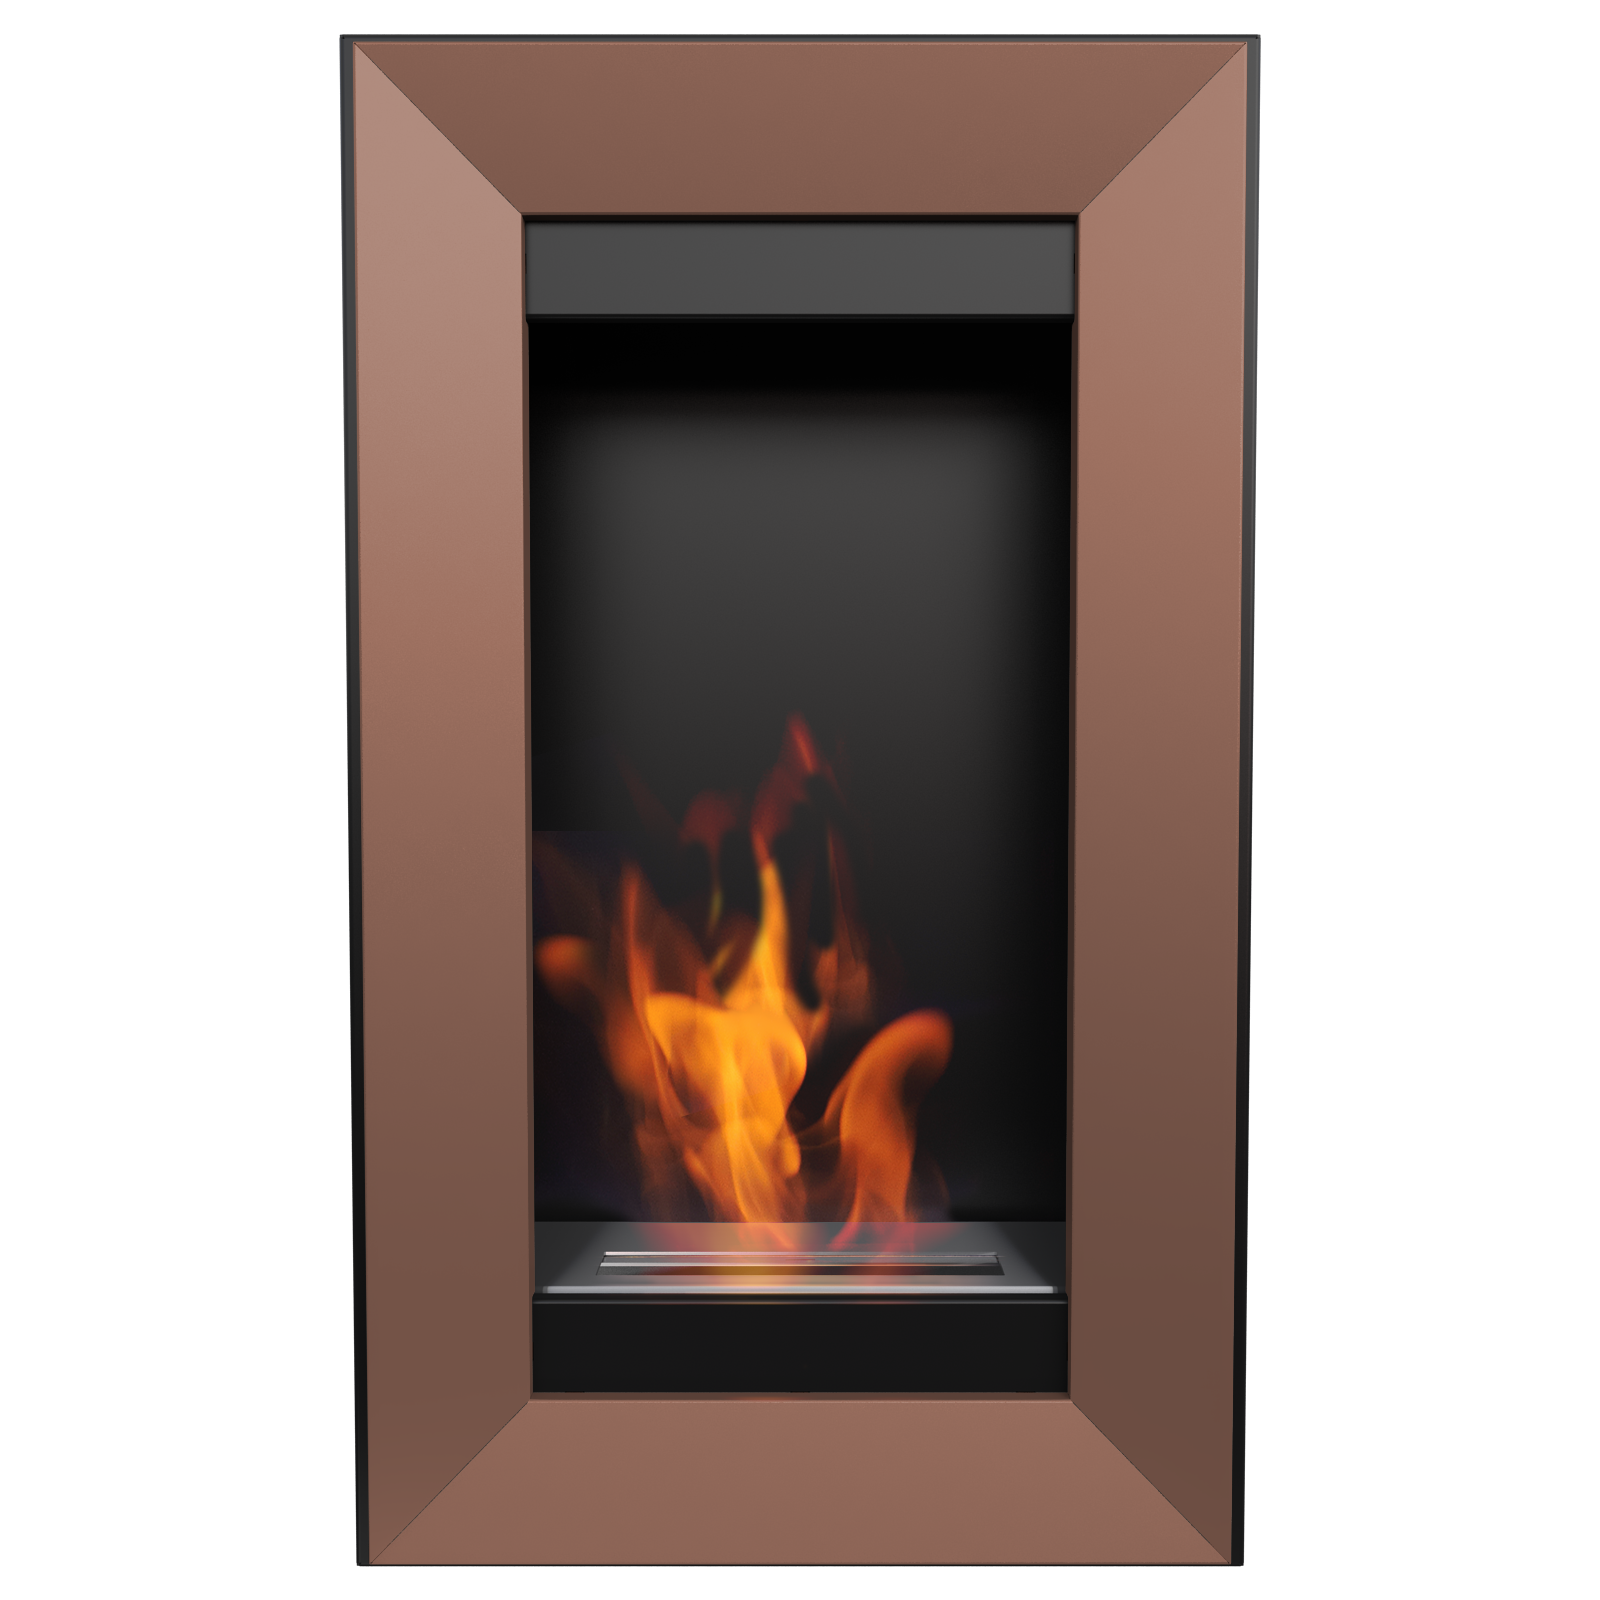 artistic productgallery fireplaces bio blk ethanol design kitchens ventless fireplace nyc outdoor and napoleon room